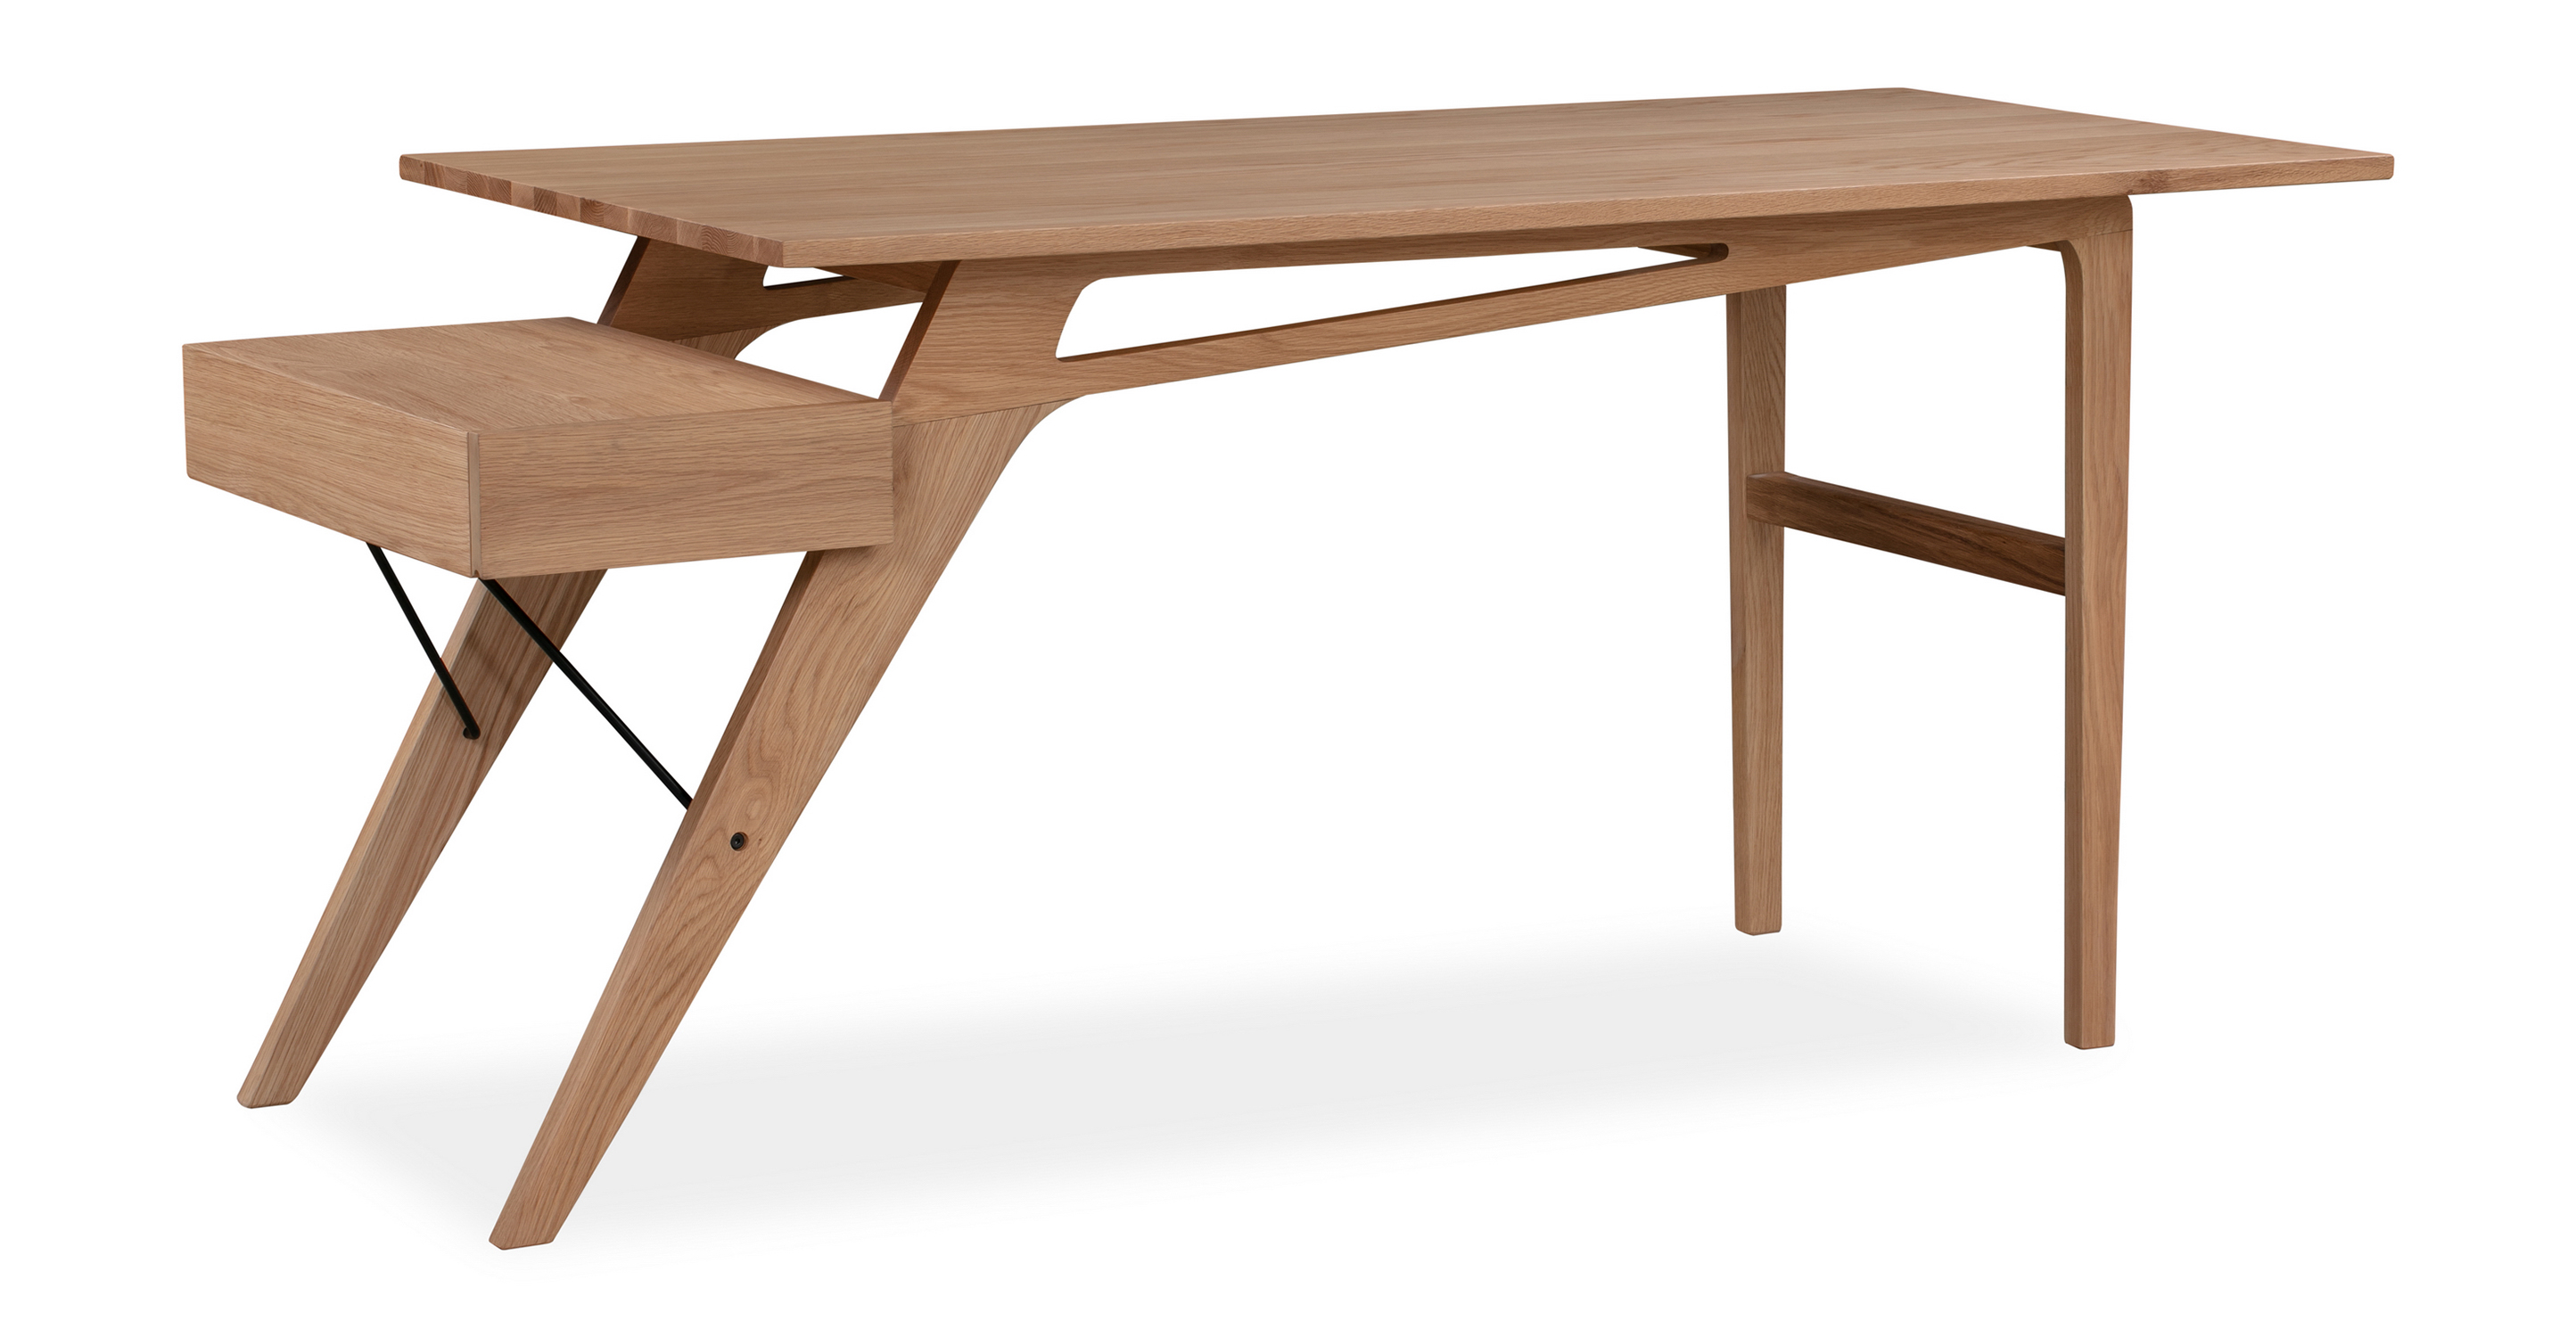 "Protractor Jr. 67"" Desk, Natural Oak"